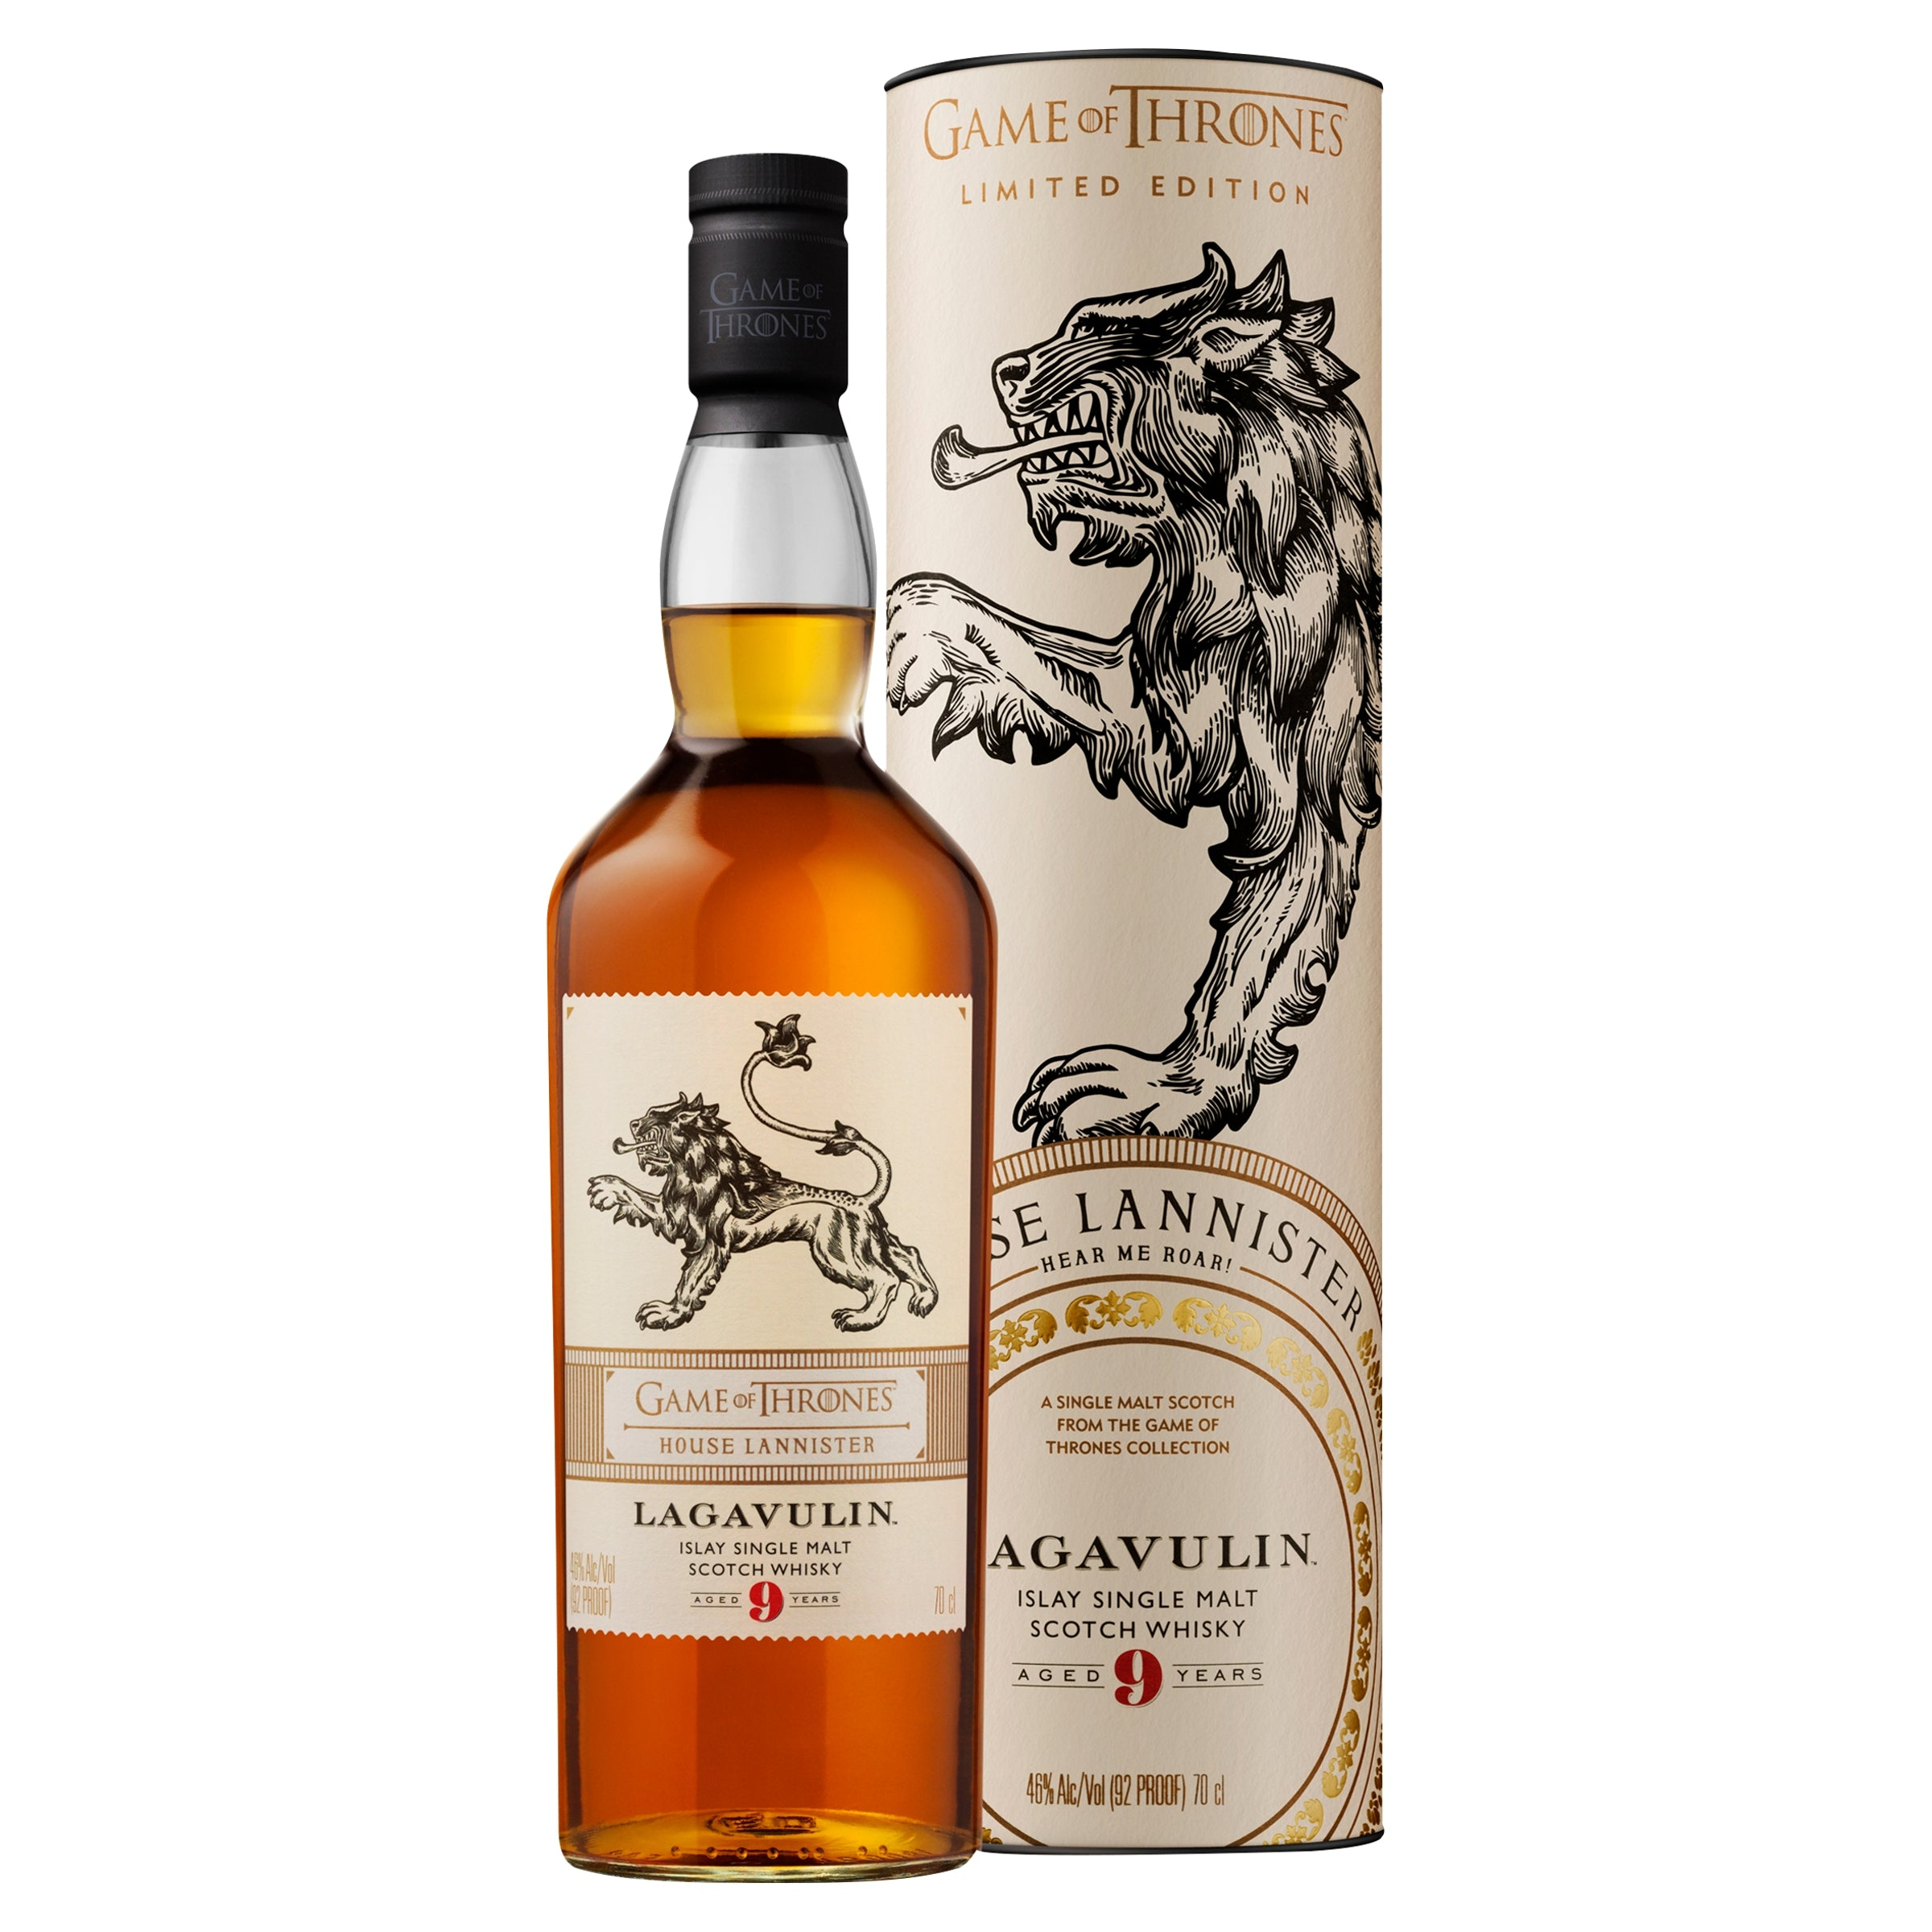 House Lannister Lagavulin 9 Year Old